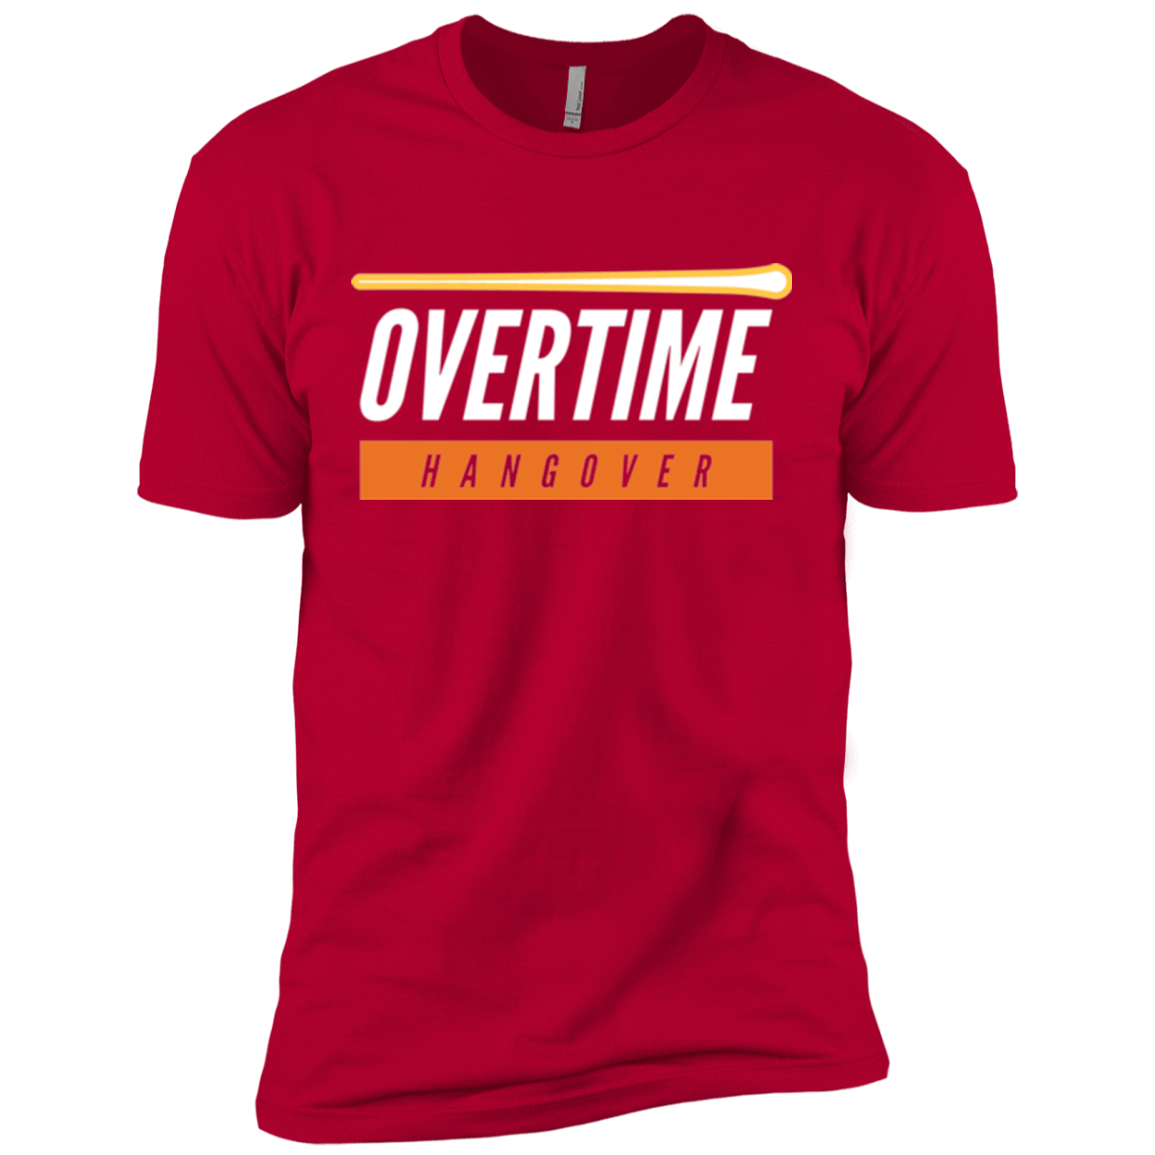 99 Percent Hangover Men's Premium T-Shirt